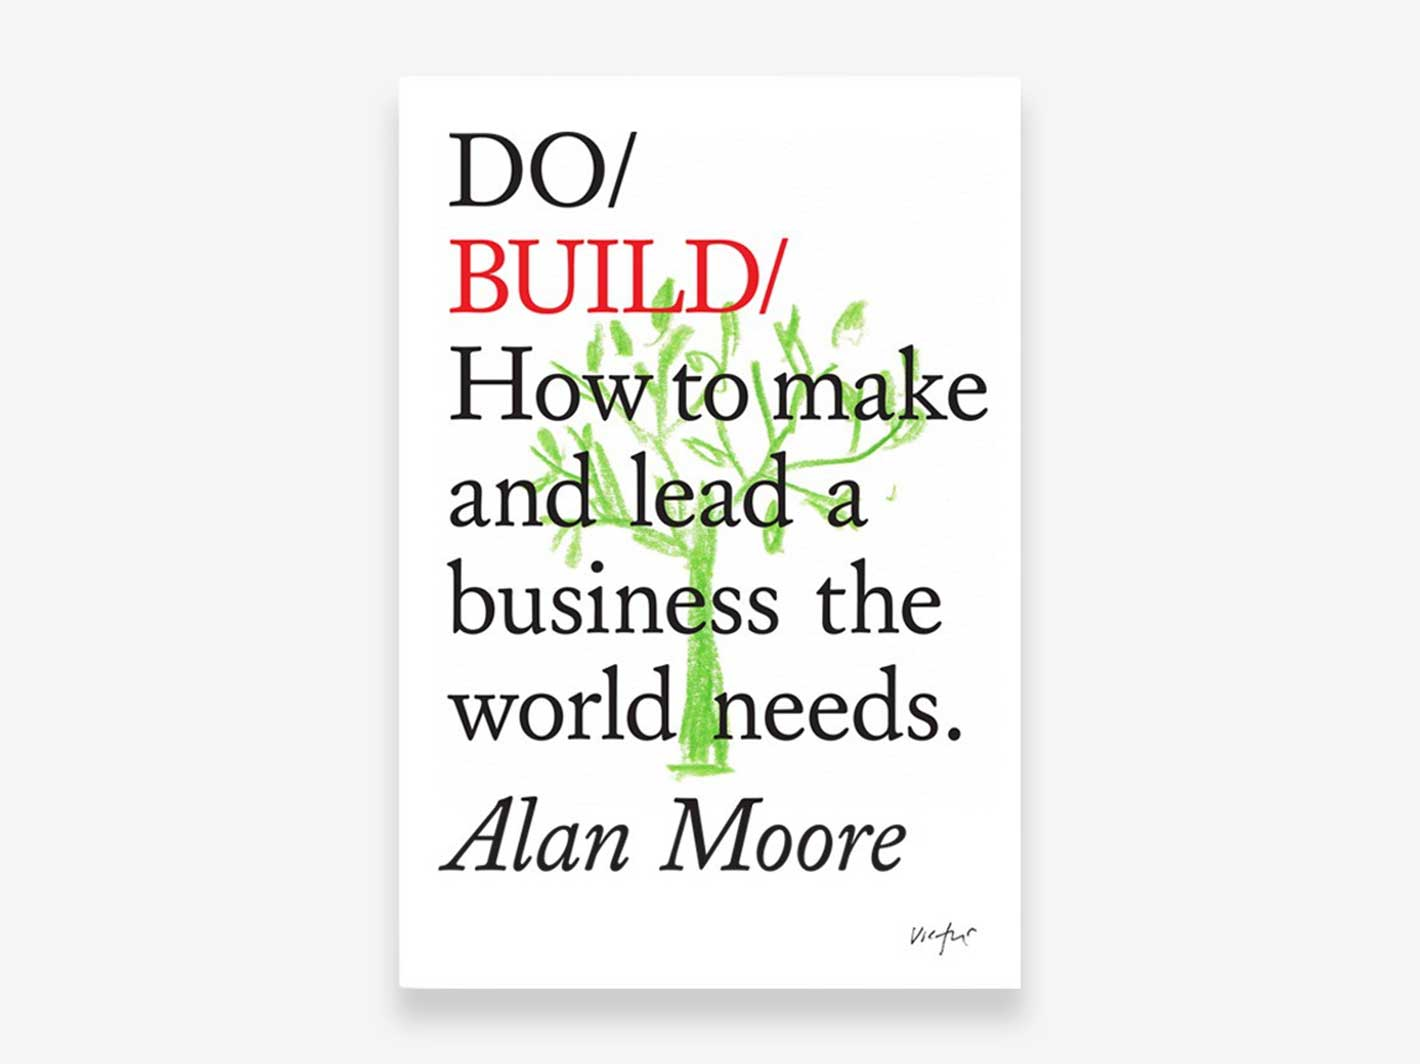 Do Build by Alan Moore